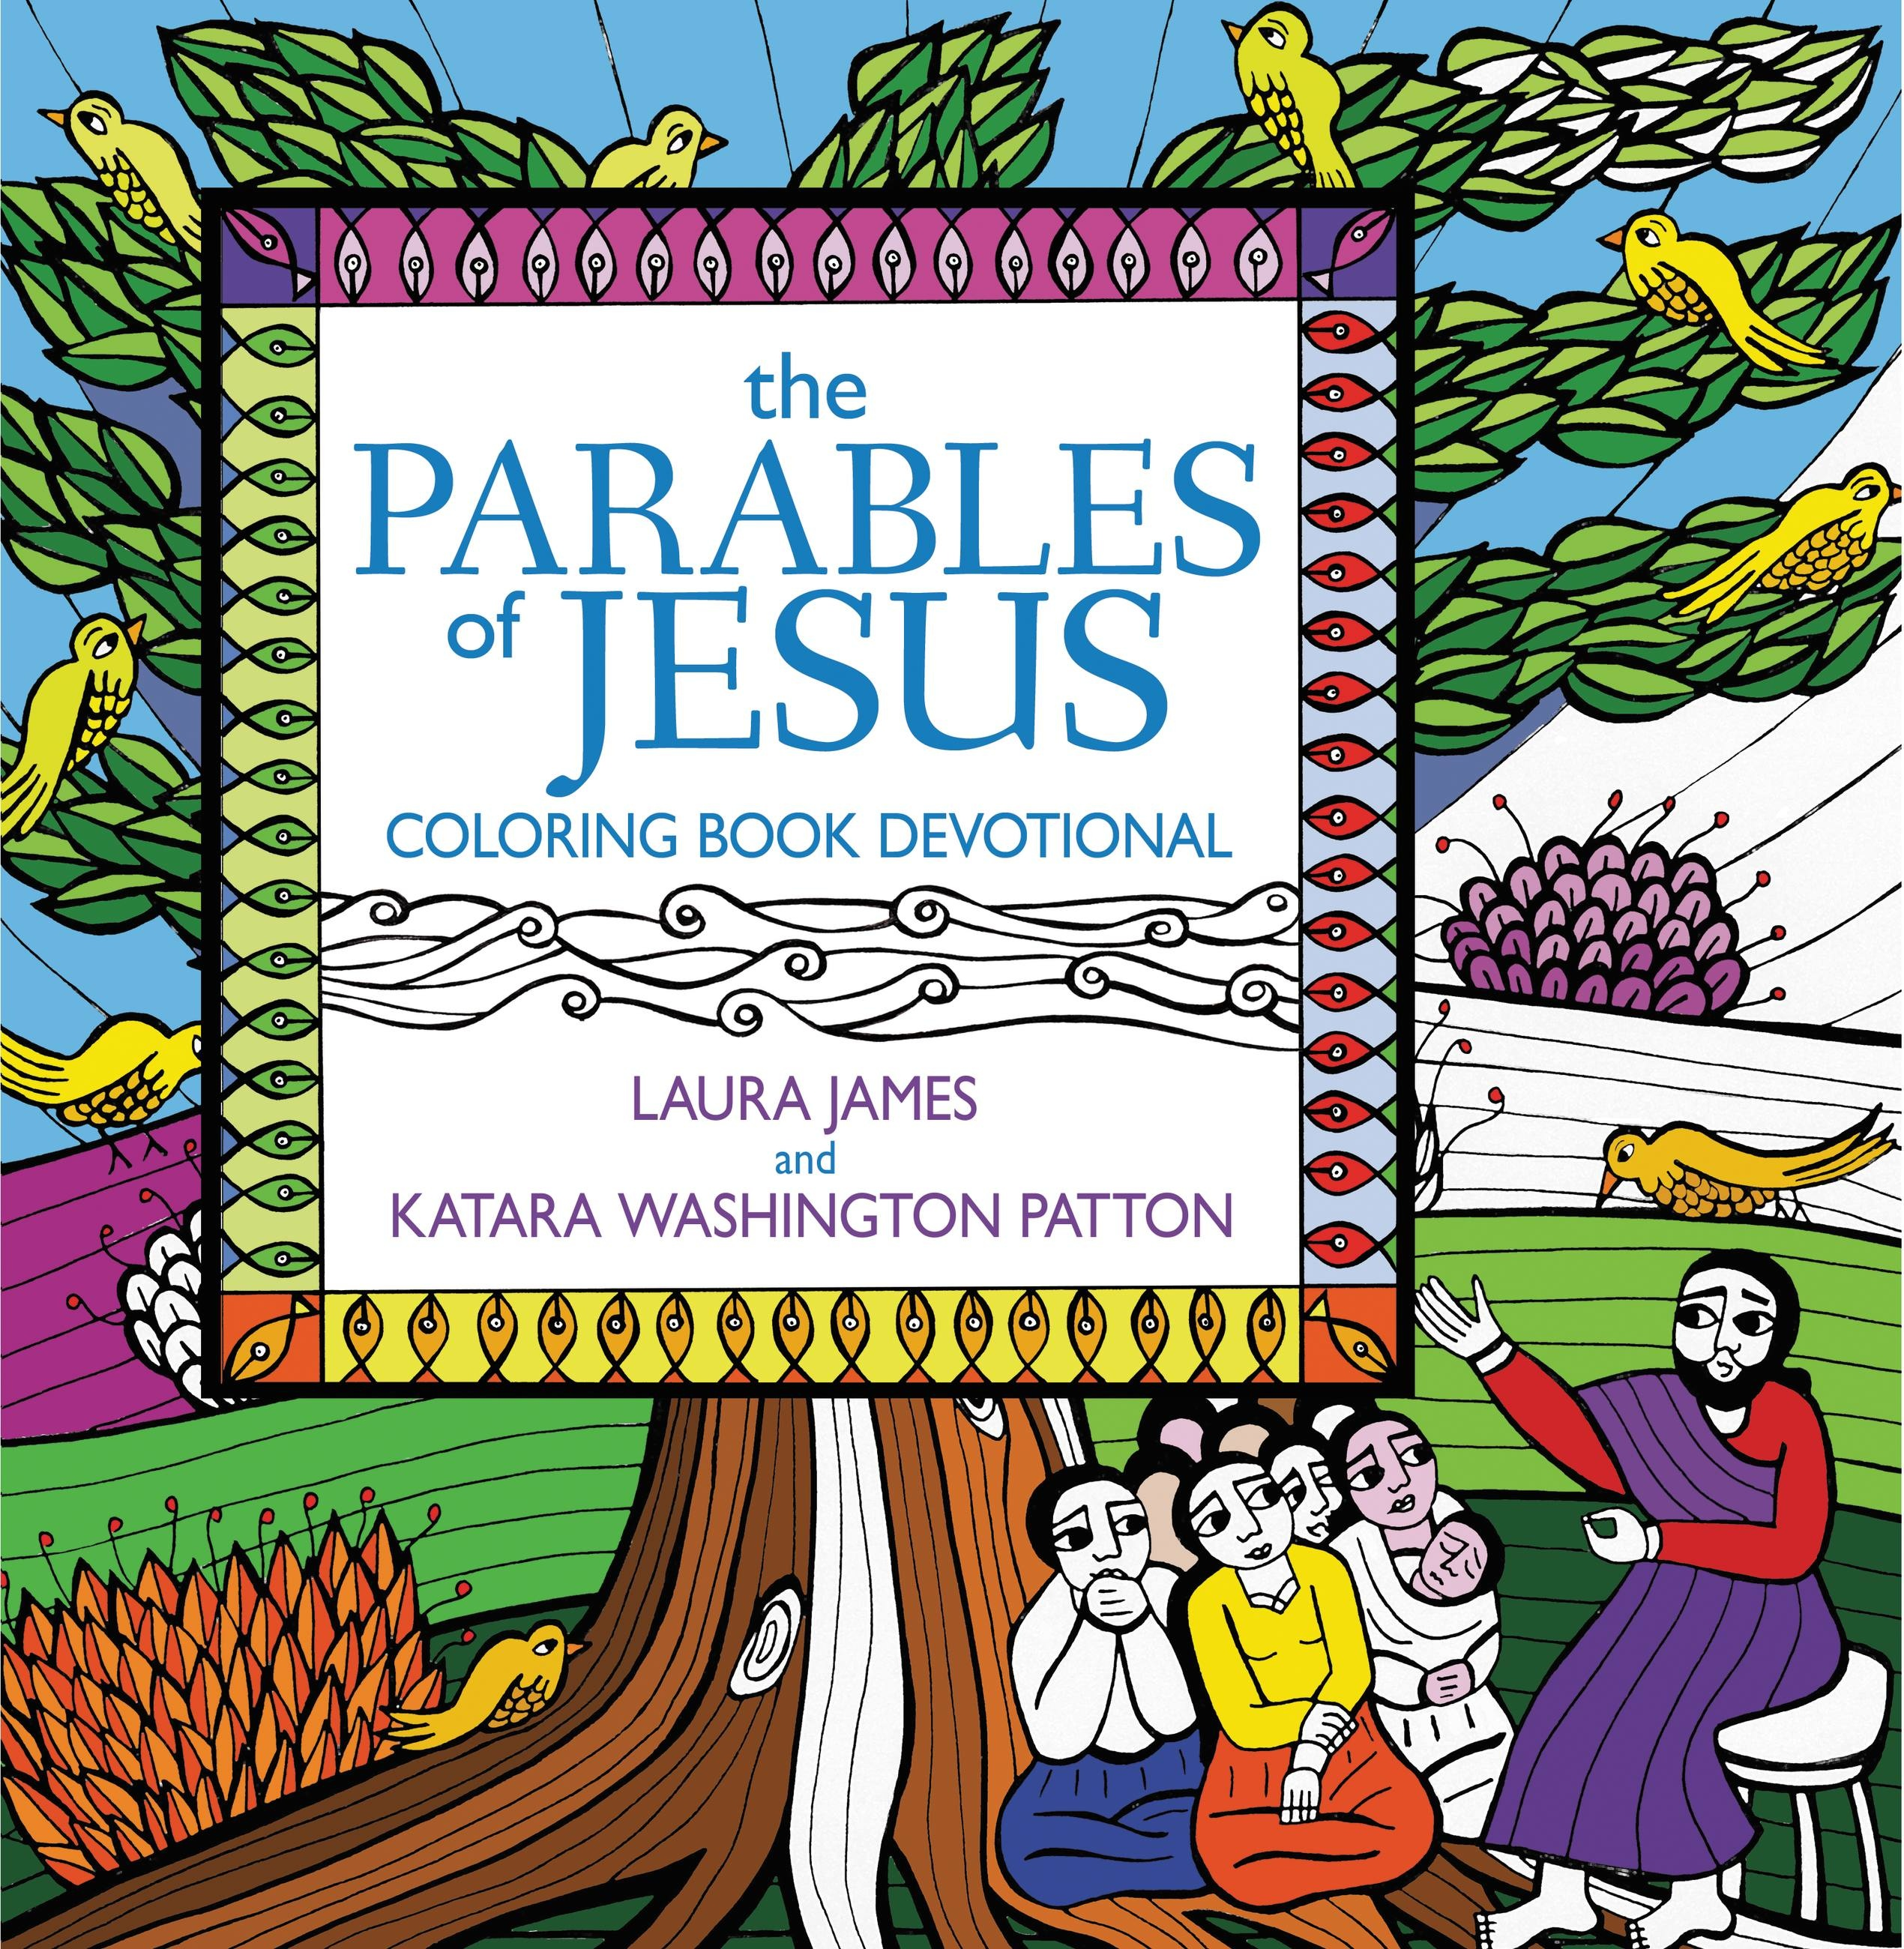 Parables of Jesus Coloring Book Devotional